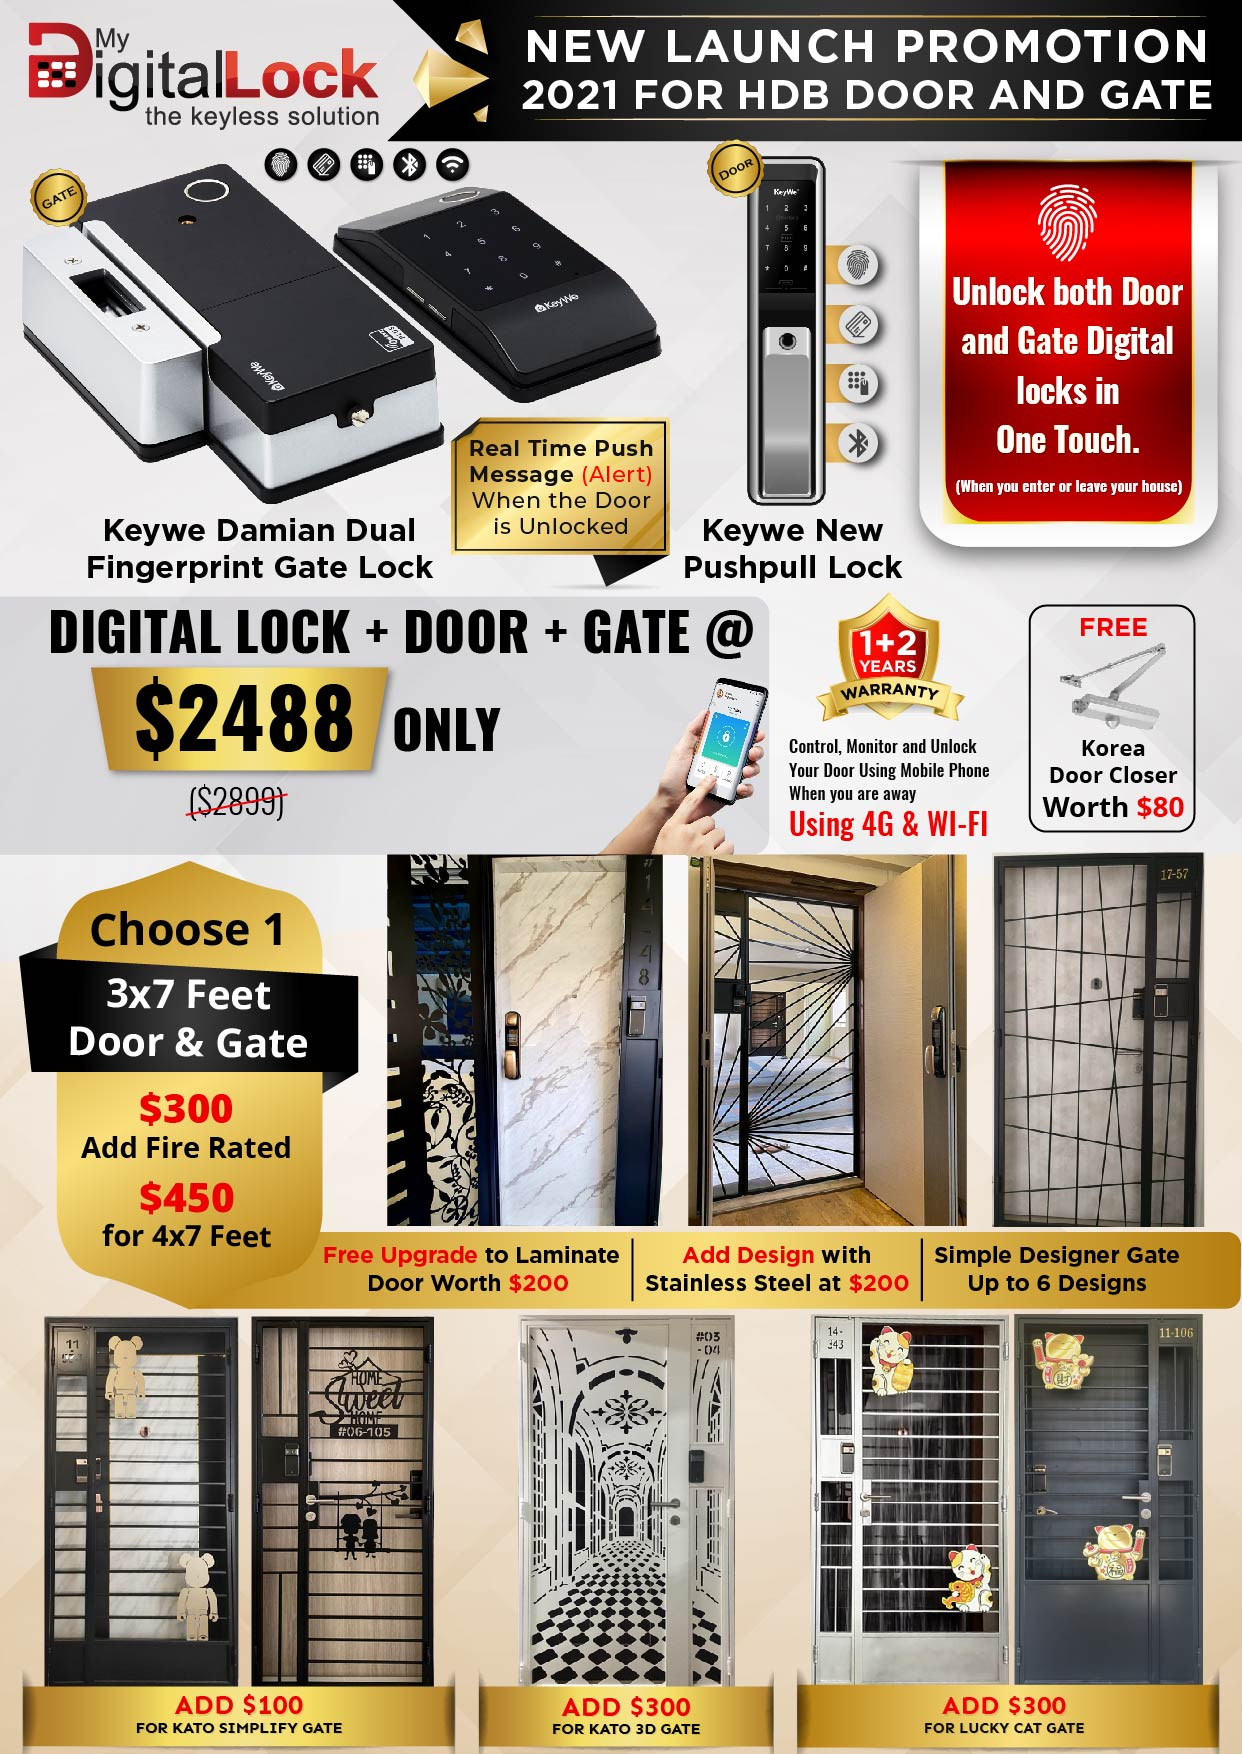 New Launch promotion for HDB and Gate